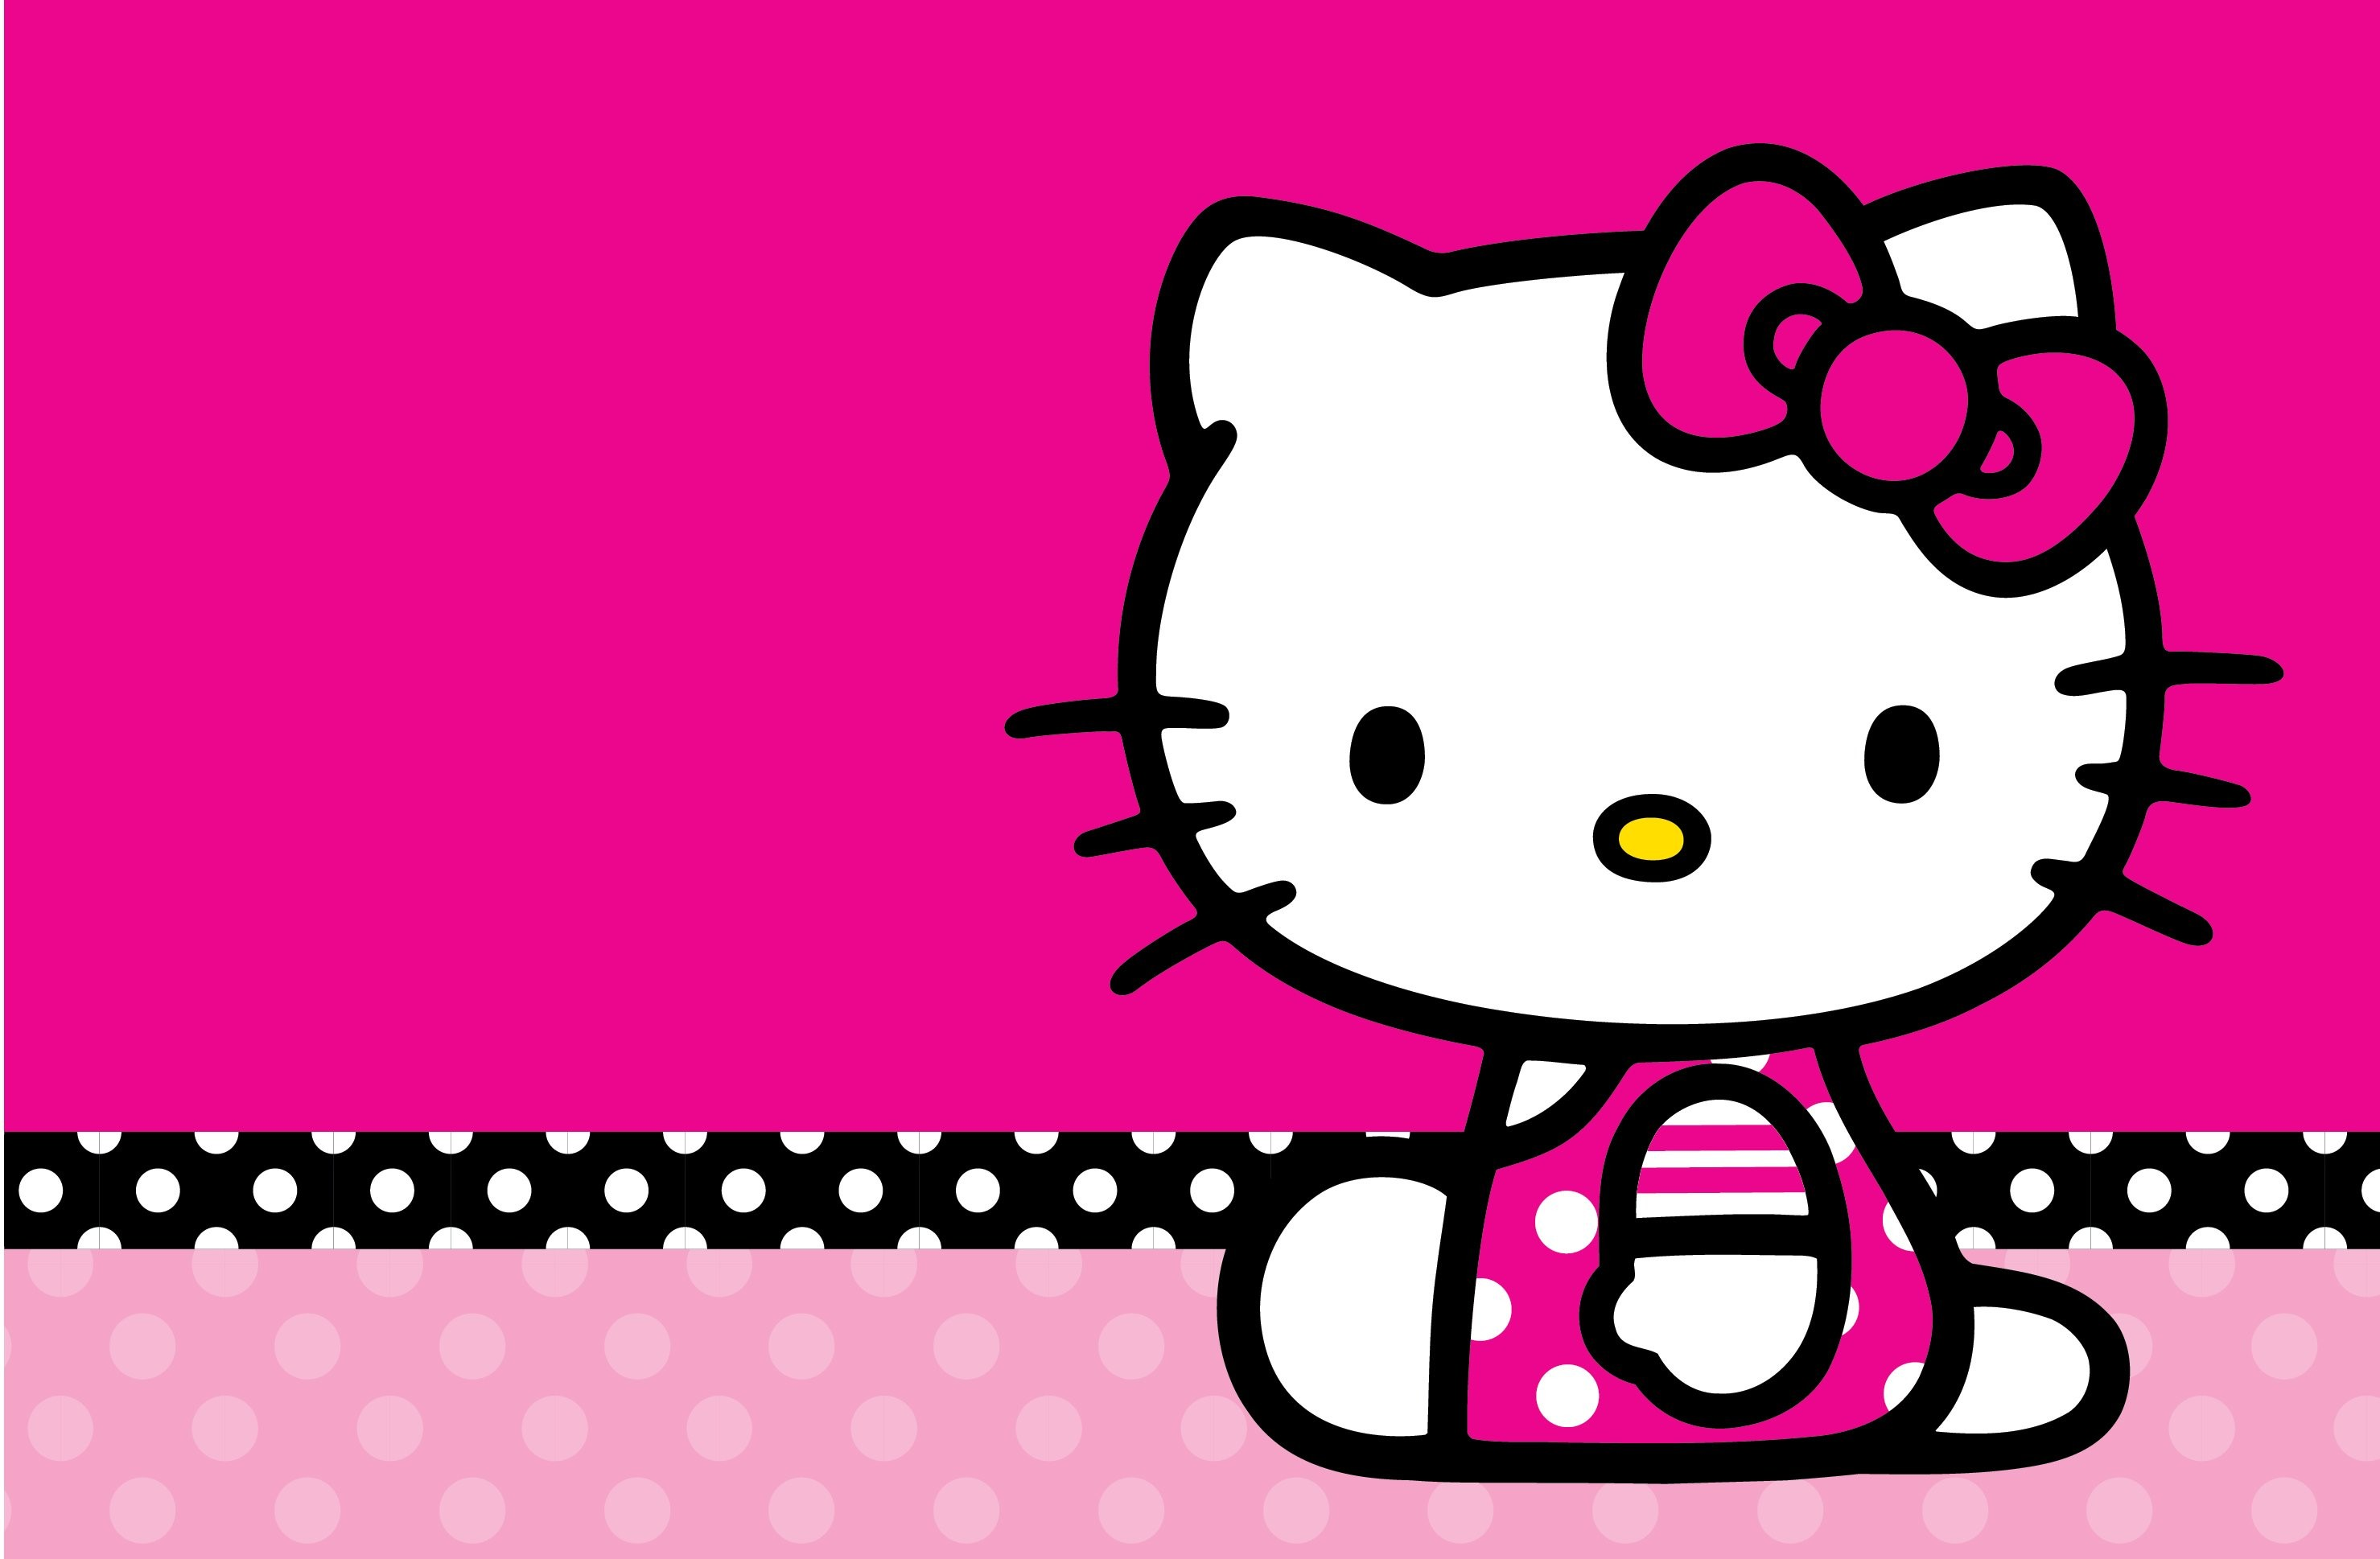 Hello Kitty Desktop Background Wallpapers 61 images 2958x1938